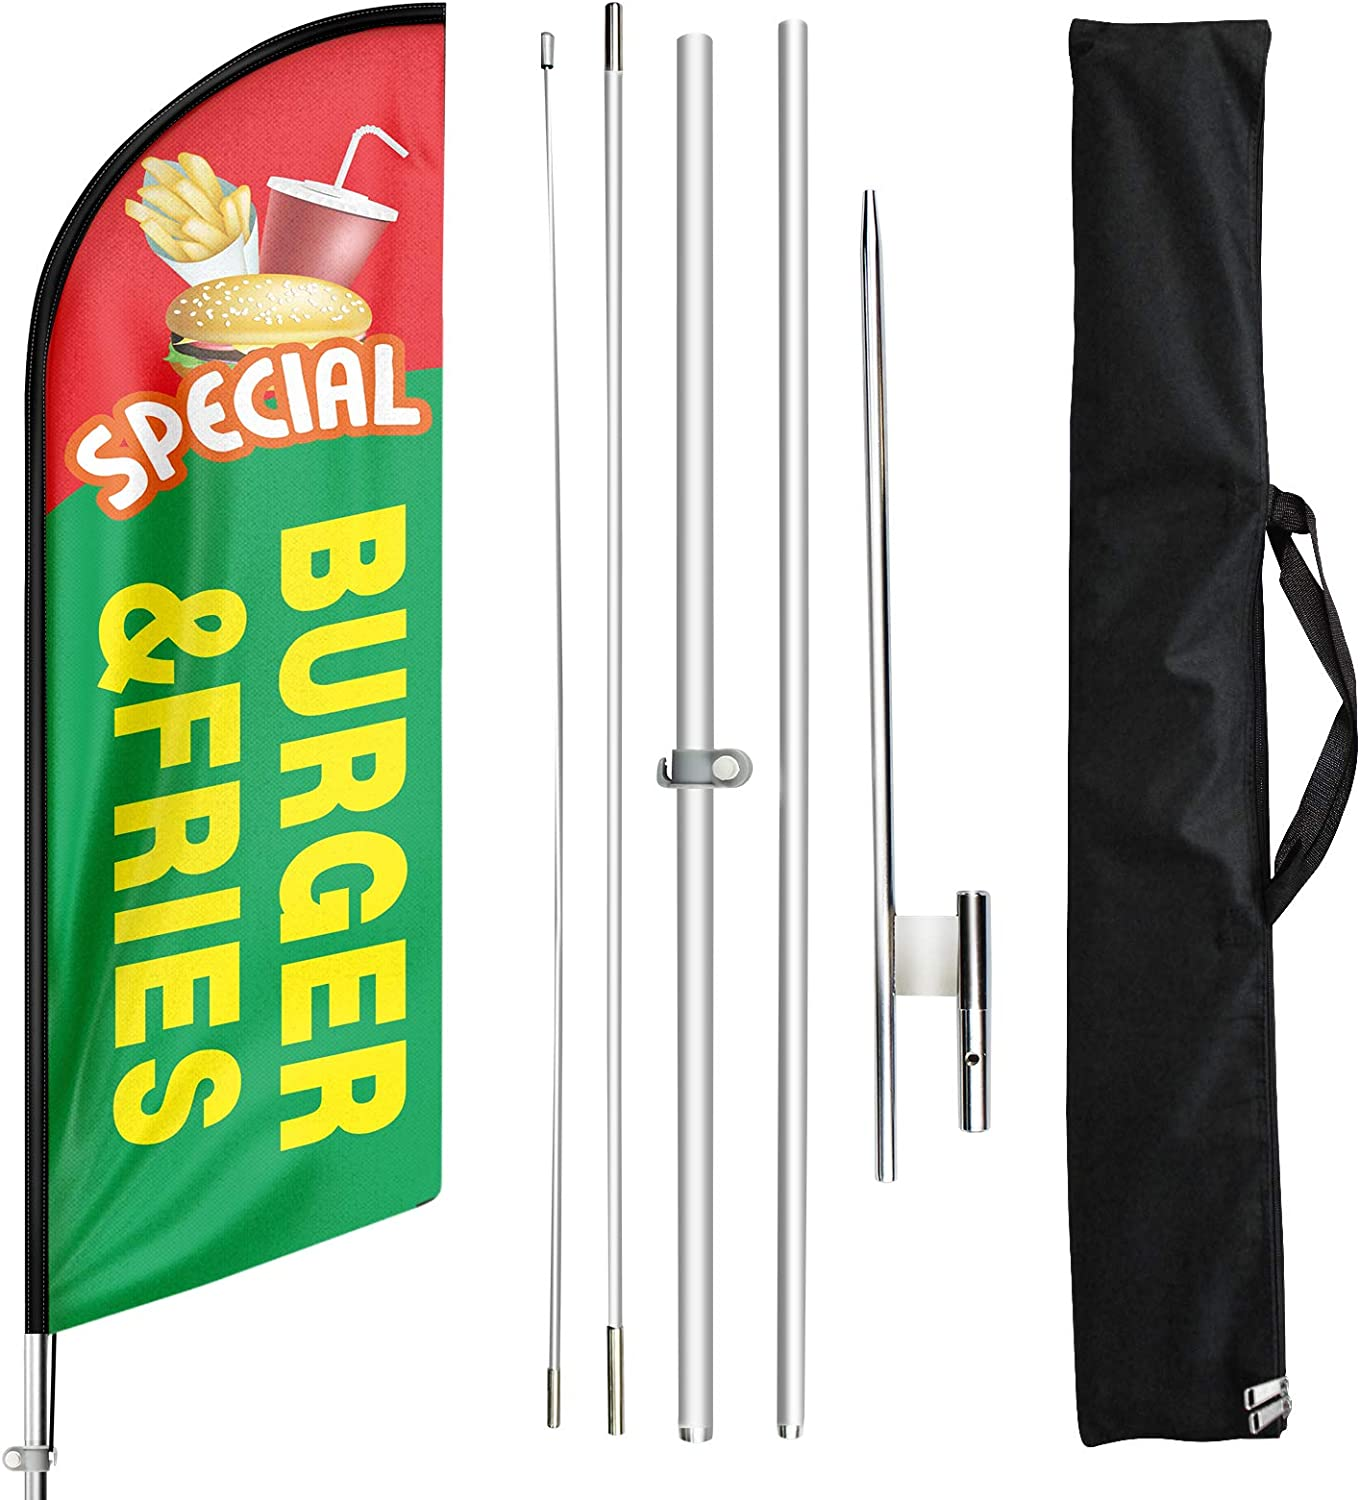 FSFLAG Swooper Flag and Pole Kit - Open Flags for Businesses -11 Ft Feather Flag for Burger and Fries - Advertising Feather Banners Signs with Flag Pole Kit and Ground Stake